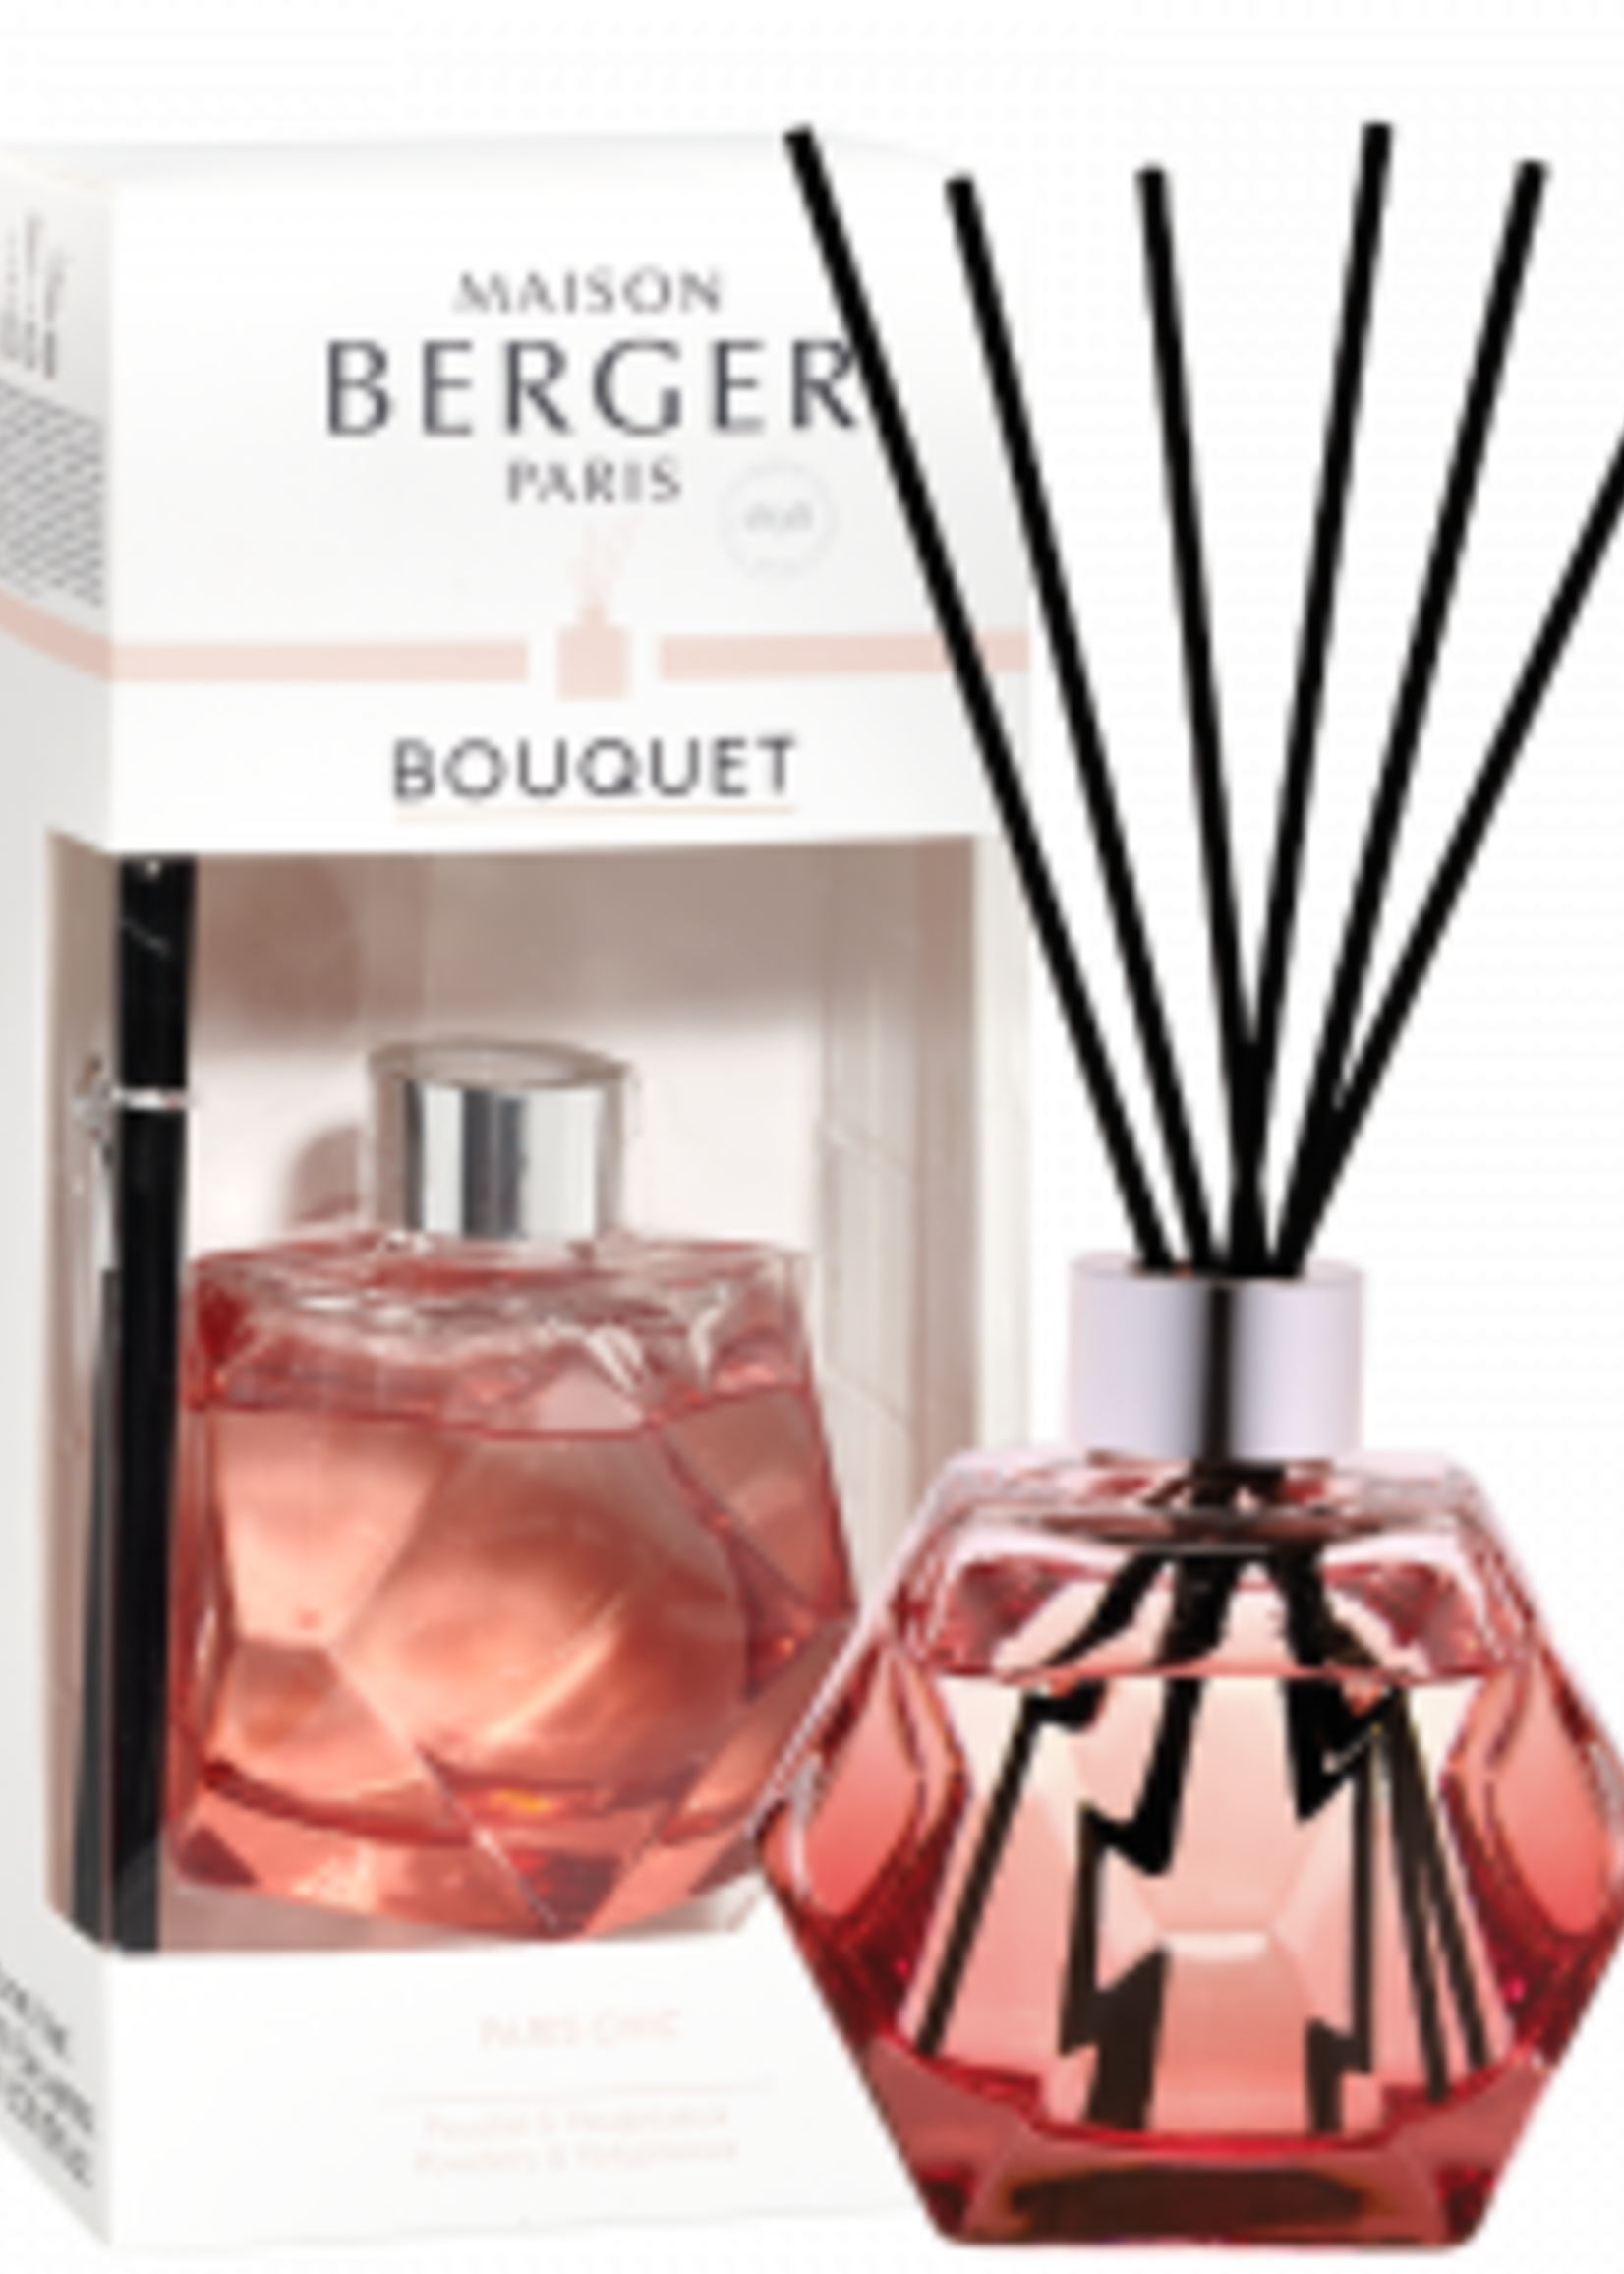 Parfum de Berger Parfumverspreider Geometry Grenadine & Paris Chic